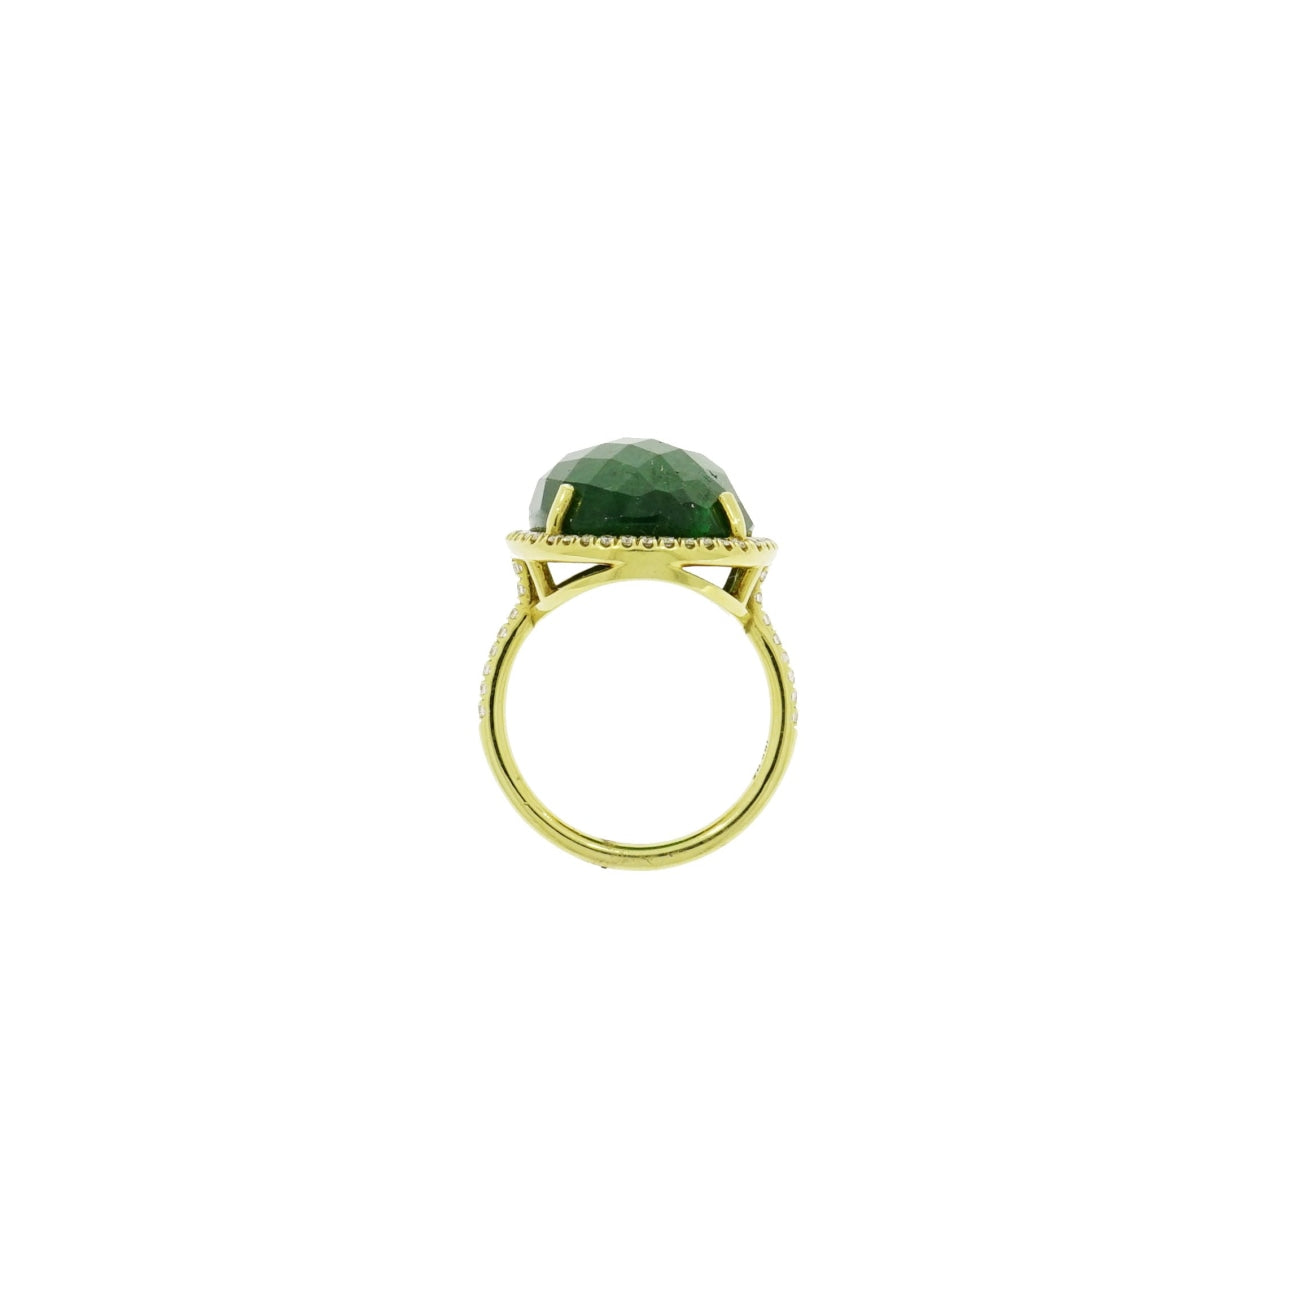 Lauren K Jewelry - Tsavorite & Diamond Yellow Gold Ring | Manfredi Jewels